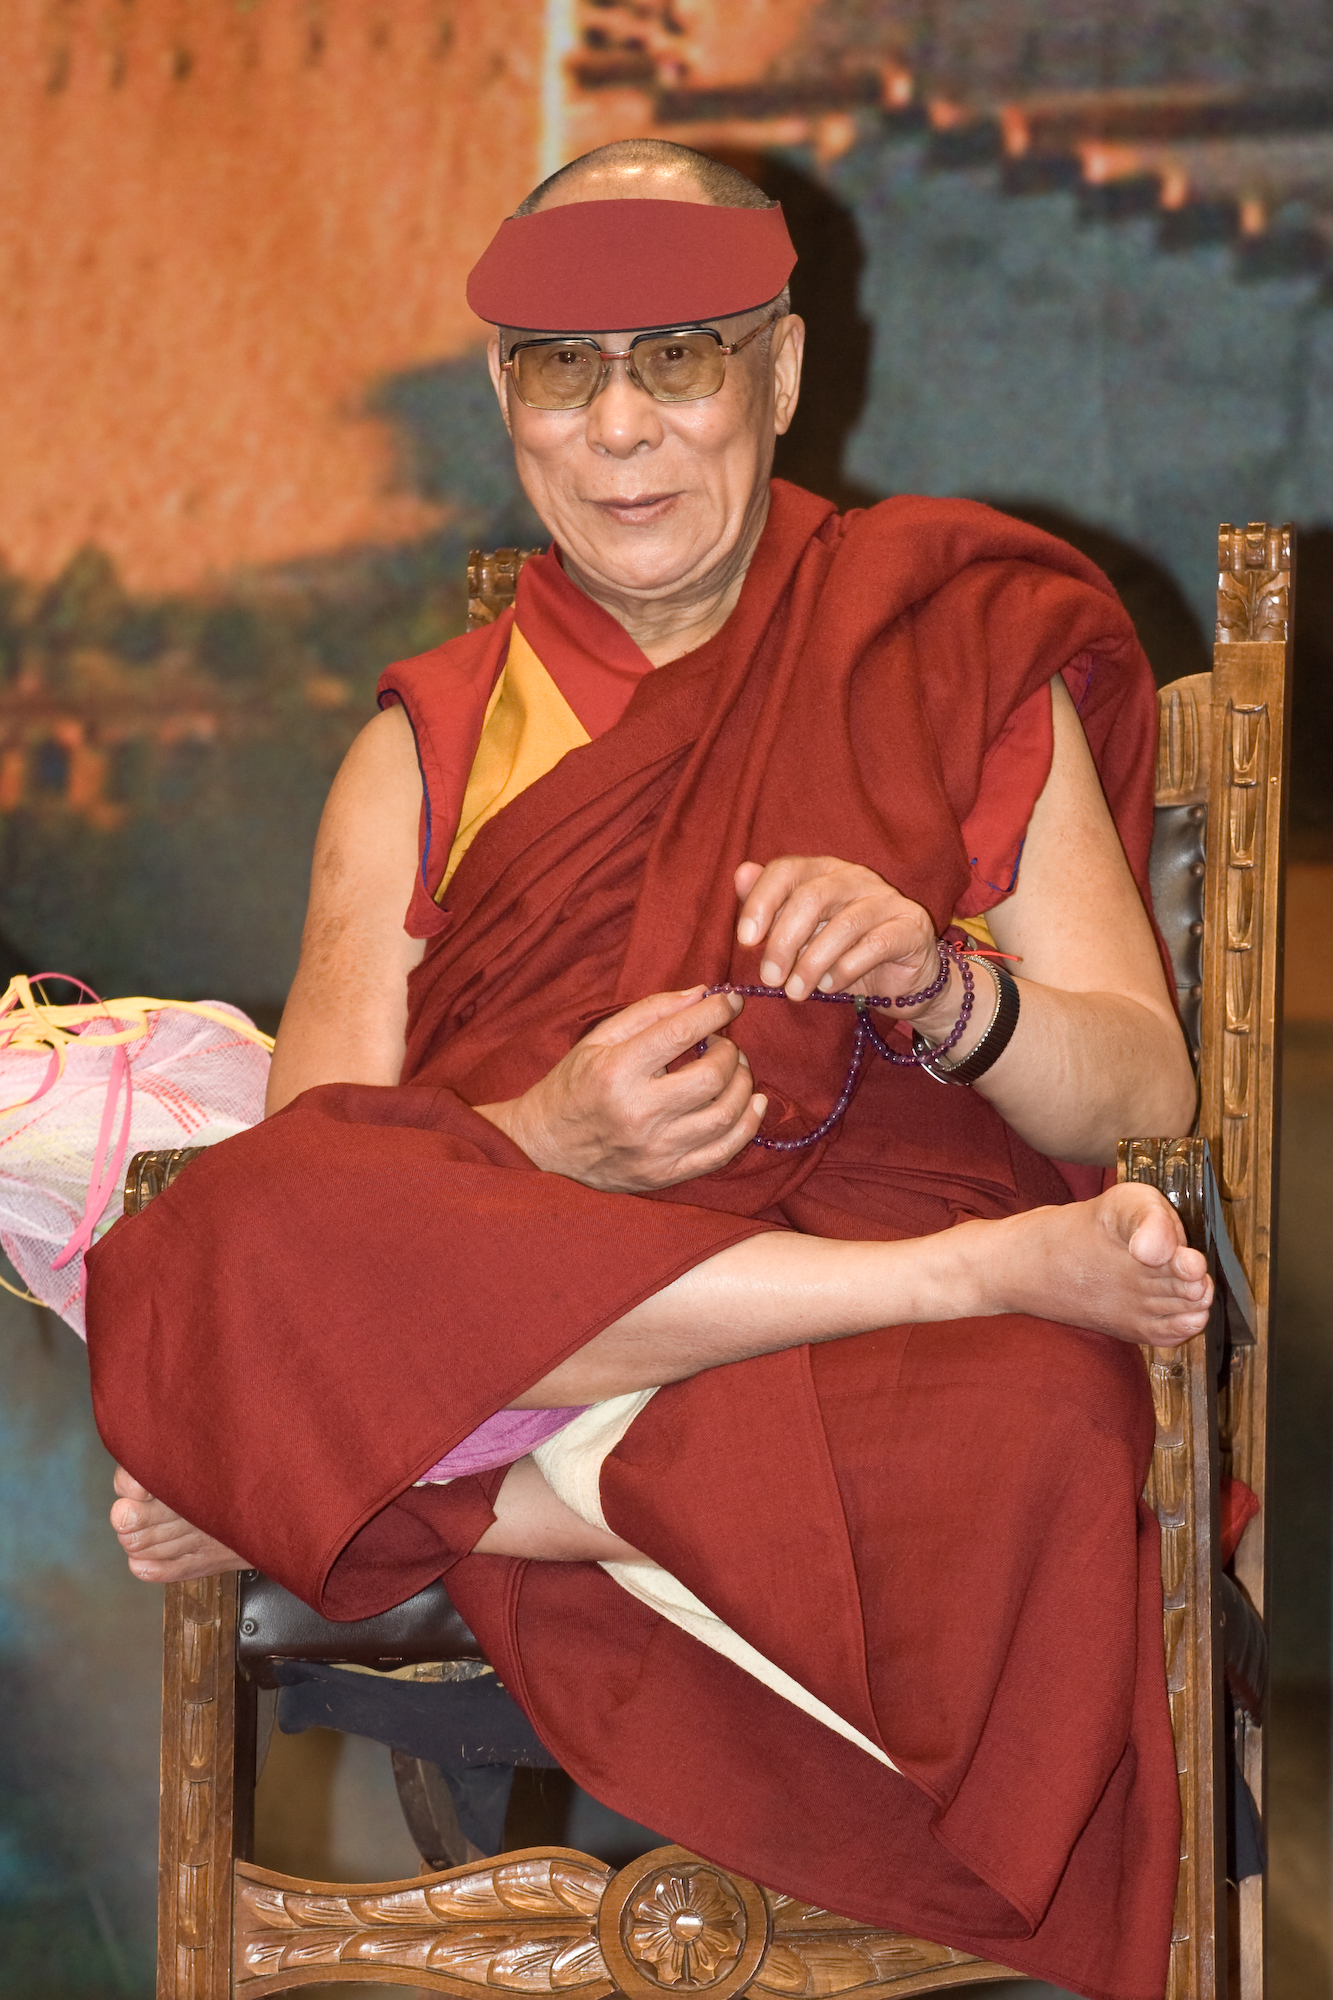 His Holiness the XIV Dalai Lama: Milarepa's story testifies to the fact that it is through hardship and constant practice that eventually leads to realization, not through a simple blessing or being touched on the head by another's palm.